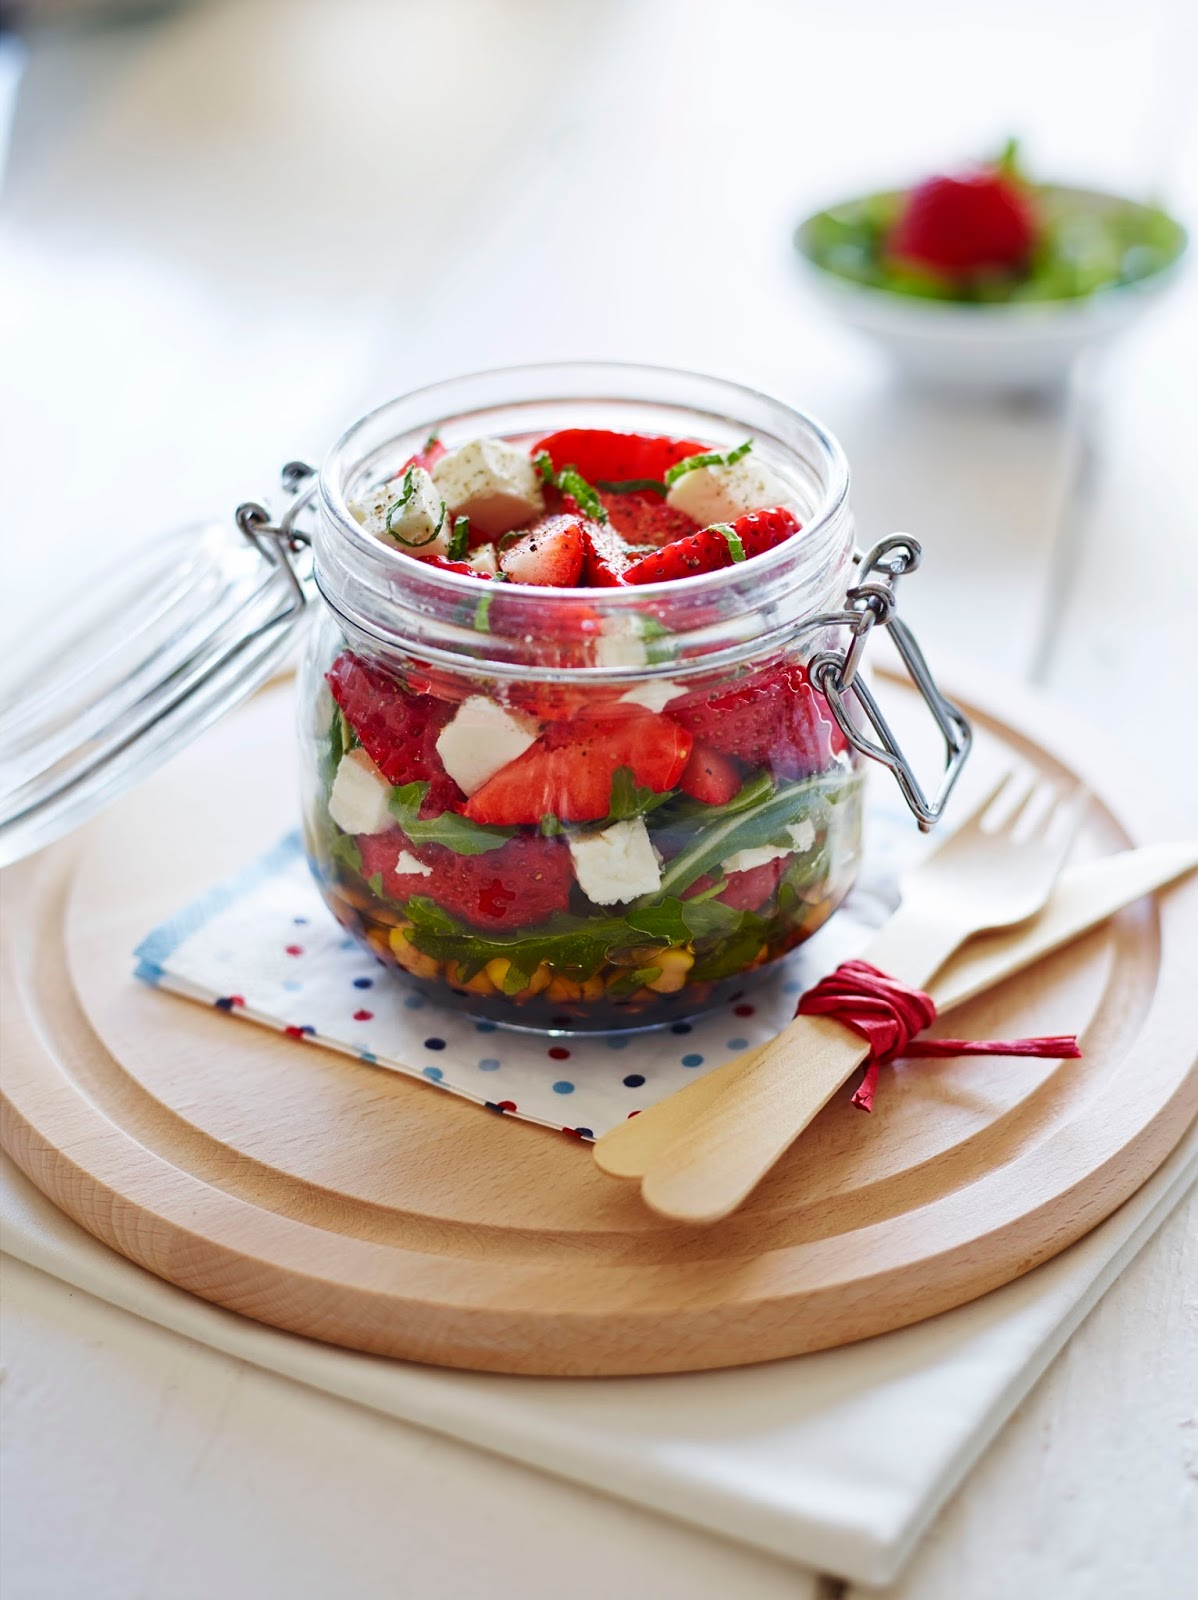 BerryWorld Strawberry Kilner Jar Salad